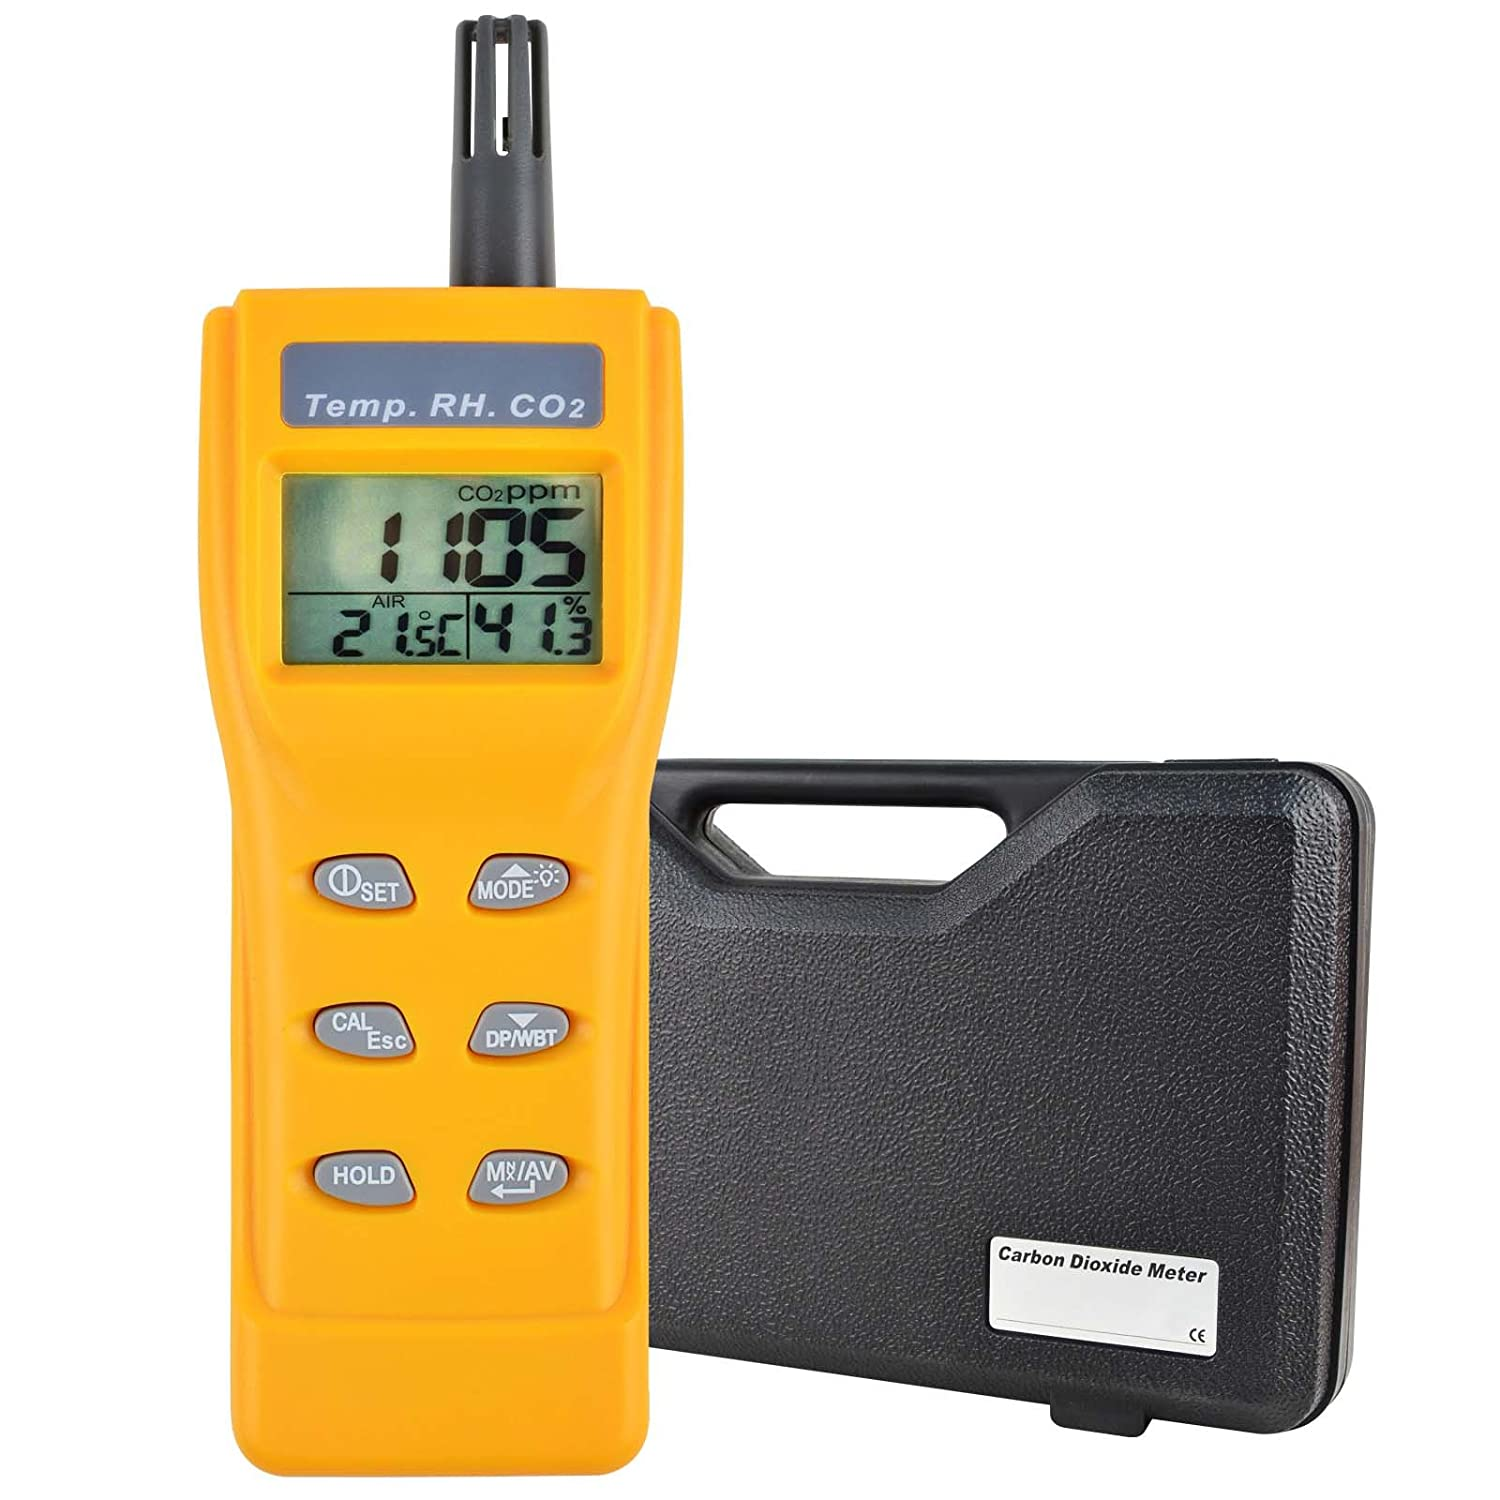 Indoor Air Quality 9999ppm Digital Carbon Dioxide Temperature Humidity NDIR Sensor IAQ CO2 Monitor WB DP Tester Gain Express Holdings Ltd A017755